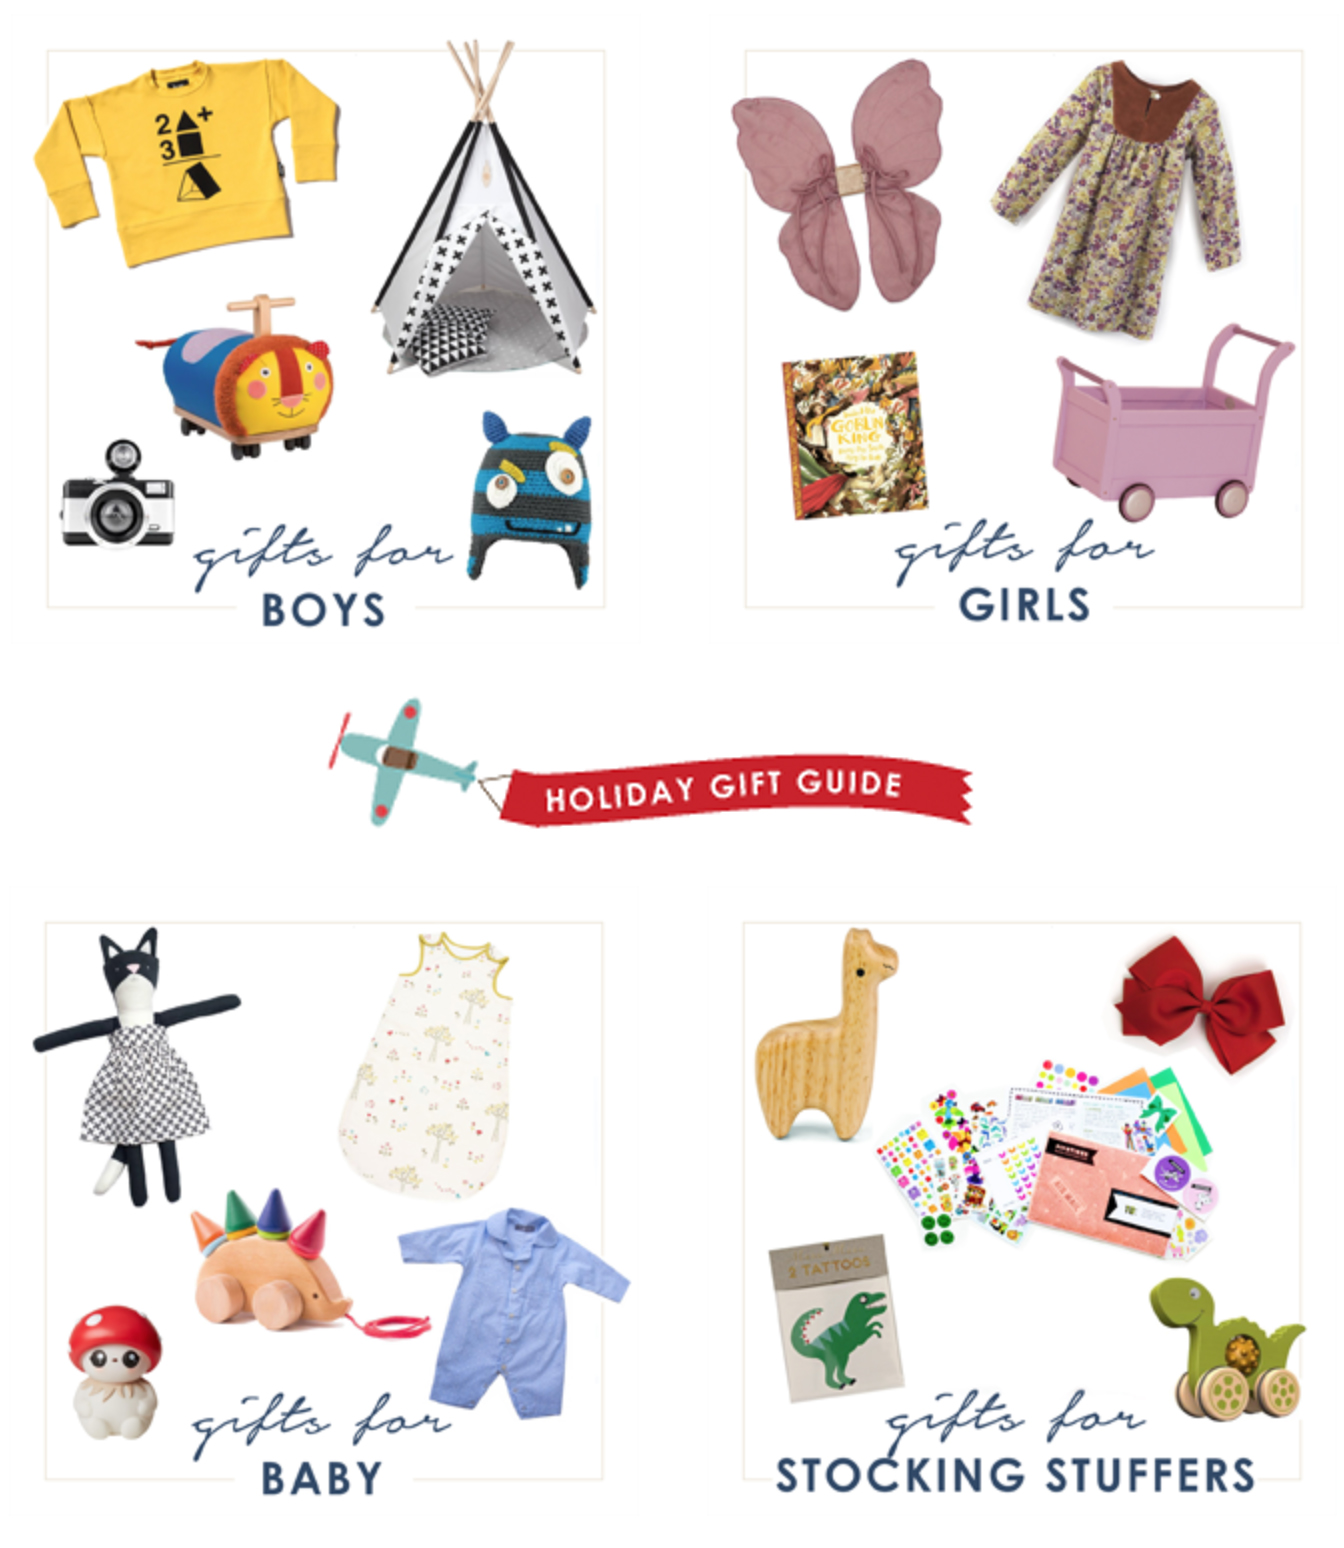 2015 Holiday Gift Guides now live! Babyccino Kids: Daily tips ...